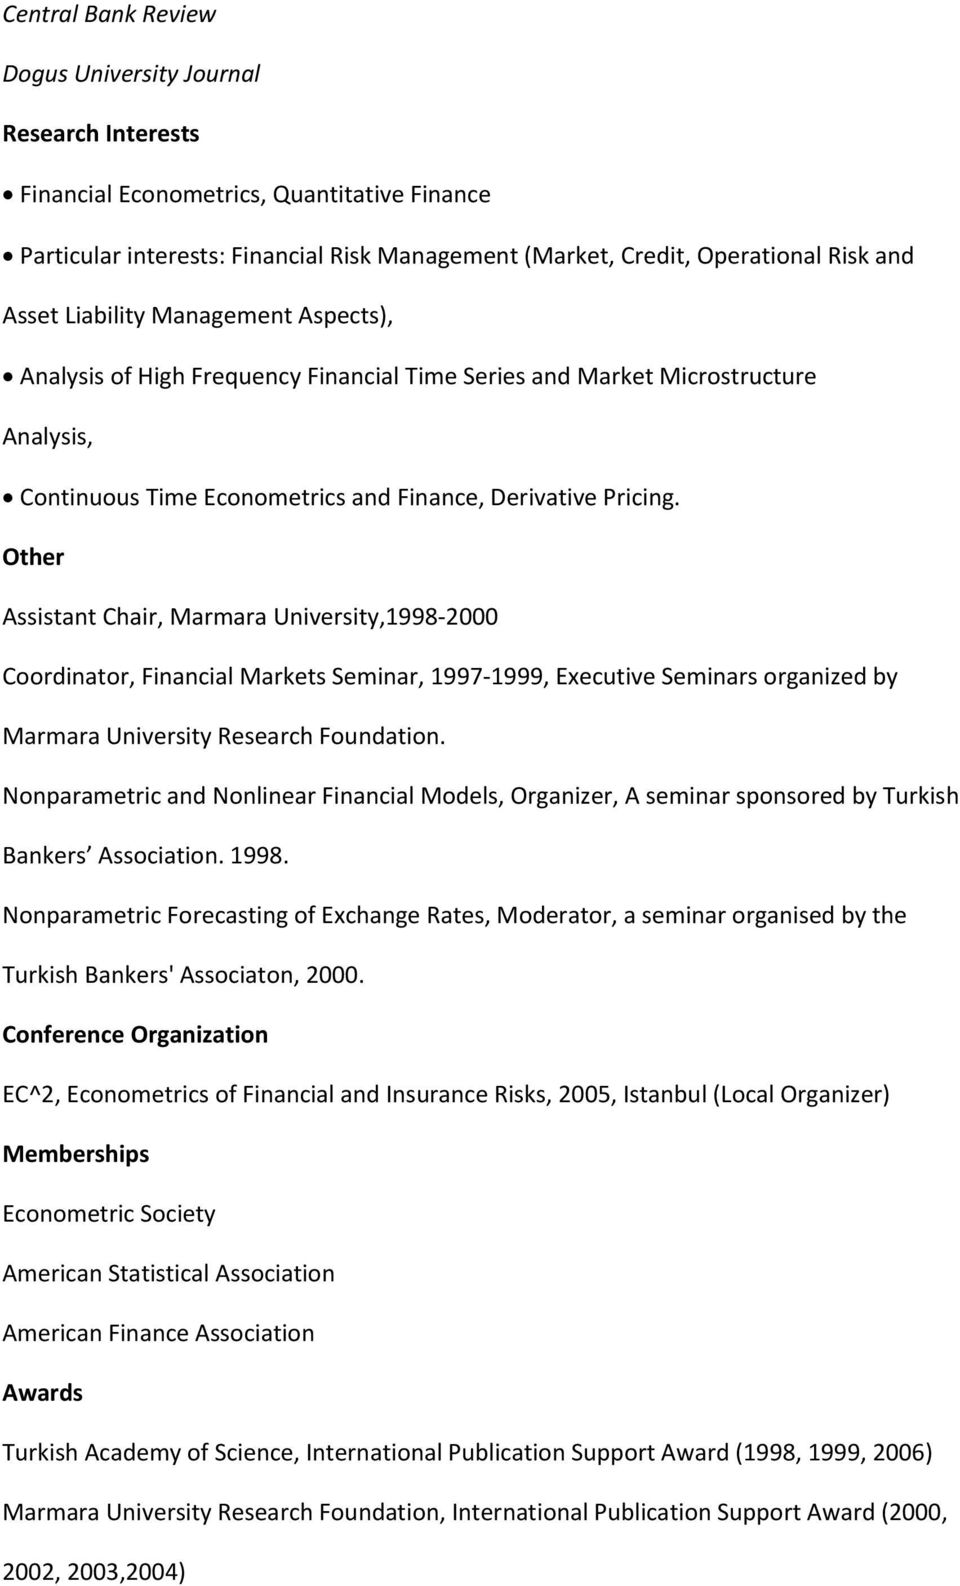 Other Assistant Chair, Marmara University,1998 2000 Coordinator, Financial Markets Seminar, 1997 1999, Executive Seminars organized by Marmara University Research Foundation.